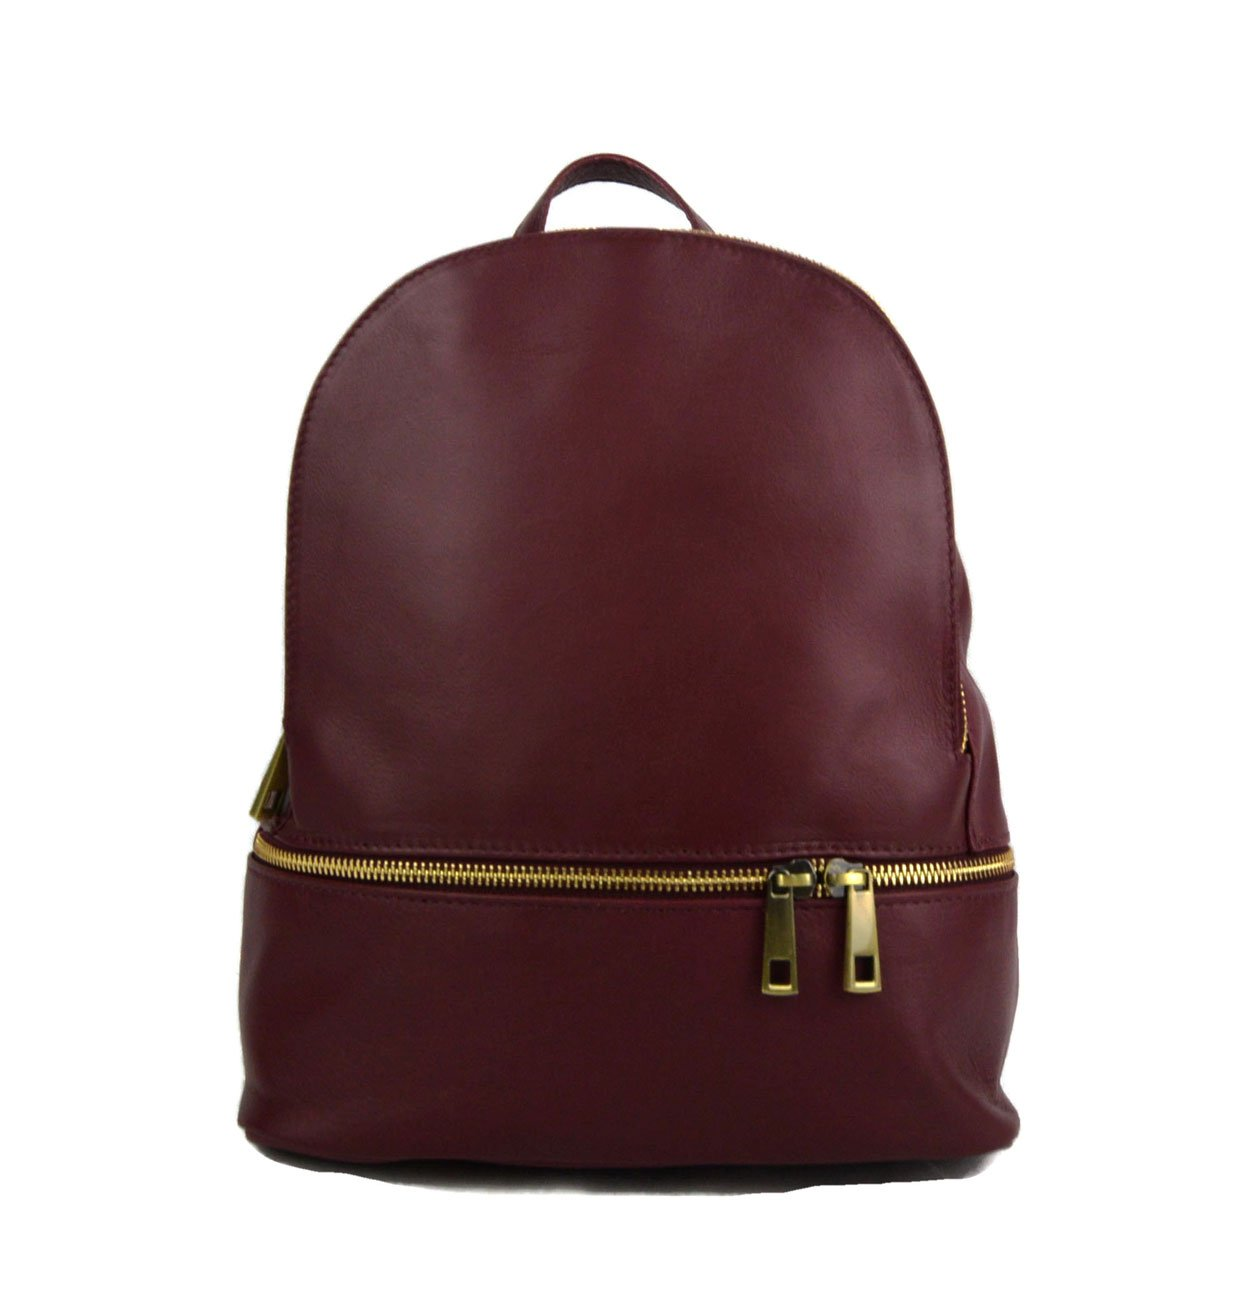 Backpack leather small backpack womens luxury backpack burgundy soft leather small backpack leather satchel ladies travel bag